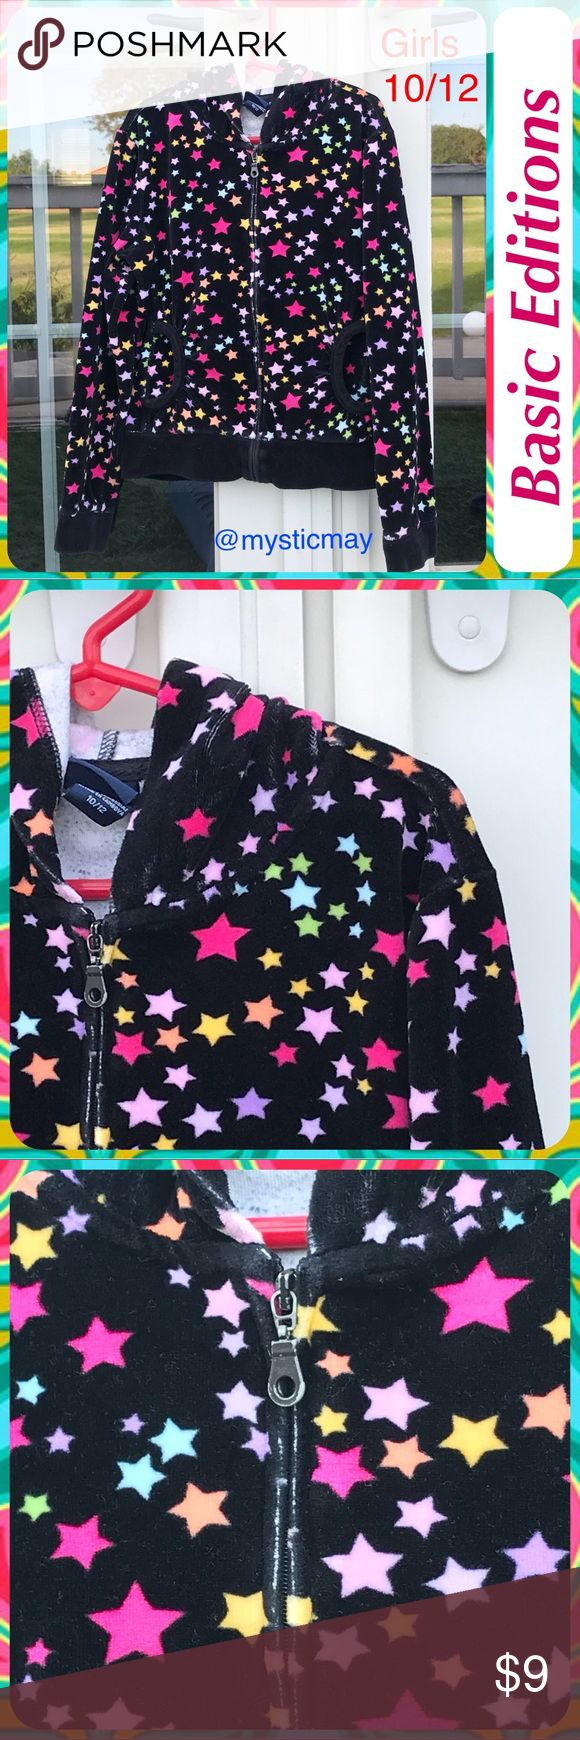 """Girls Black Velour Rainbow Star Zip-Up Hoodie Sz M Super soft Black Velour Hoodie Jacket with multi-color star design throughout! Zips up. Lightweight with circular pockets at the waist. Long sleeves. Girls Size M or 10/12. Measures 16"""" across the chest and 17"""" in length. In Good Condition- some wear on the velour by the zipper and some color fade near the hemline. See pics. Basic Editions Shirts & Tops Sweatshirts & Hoodies"""